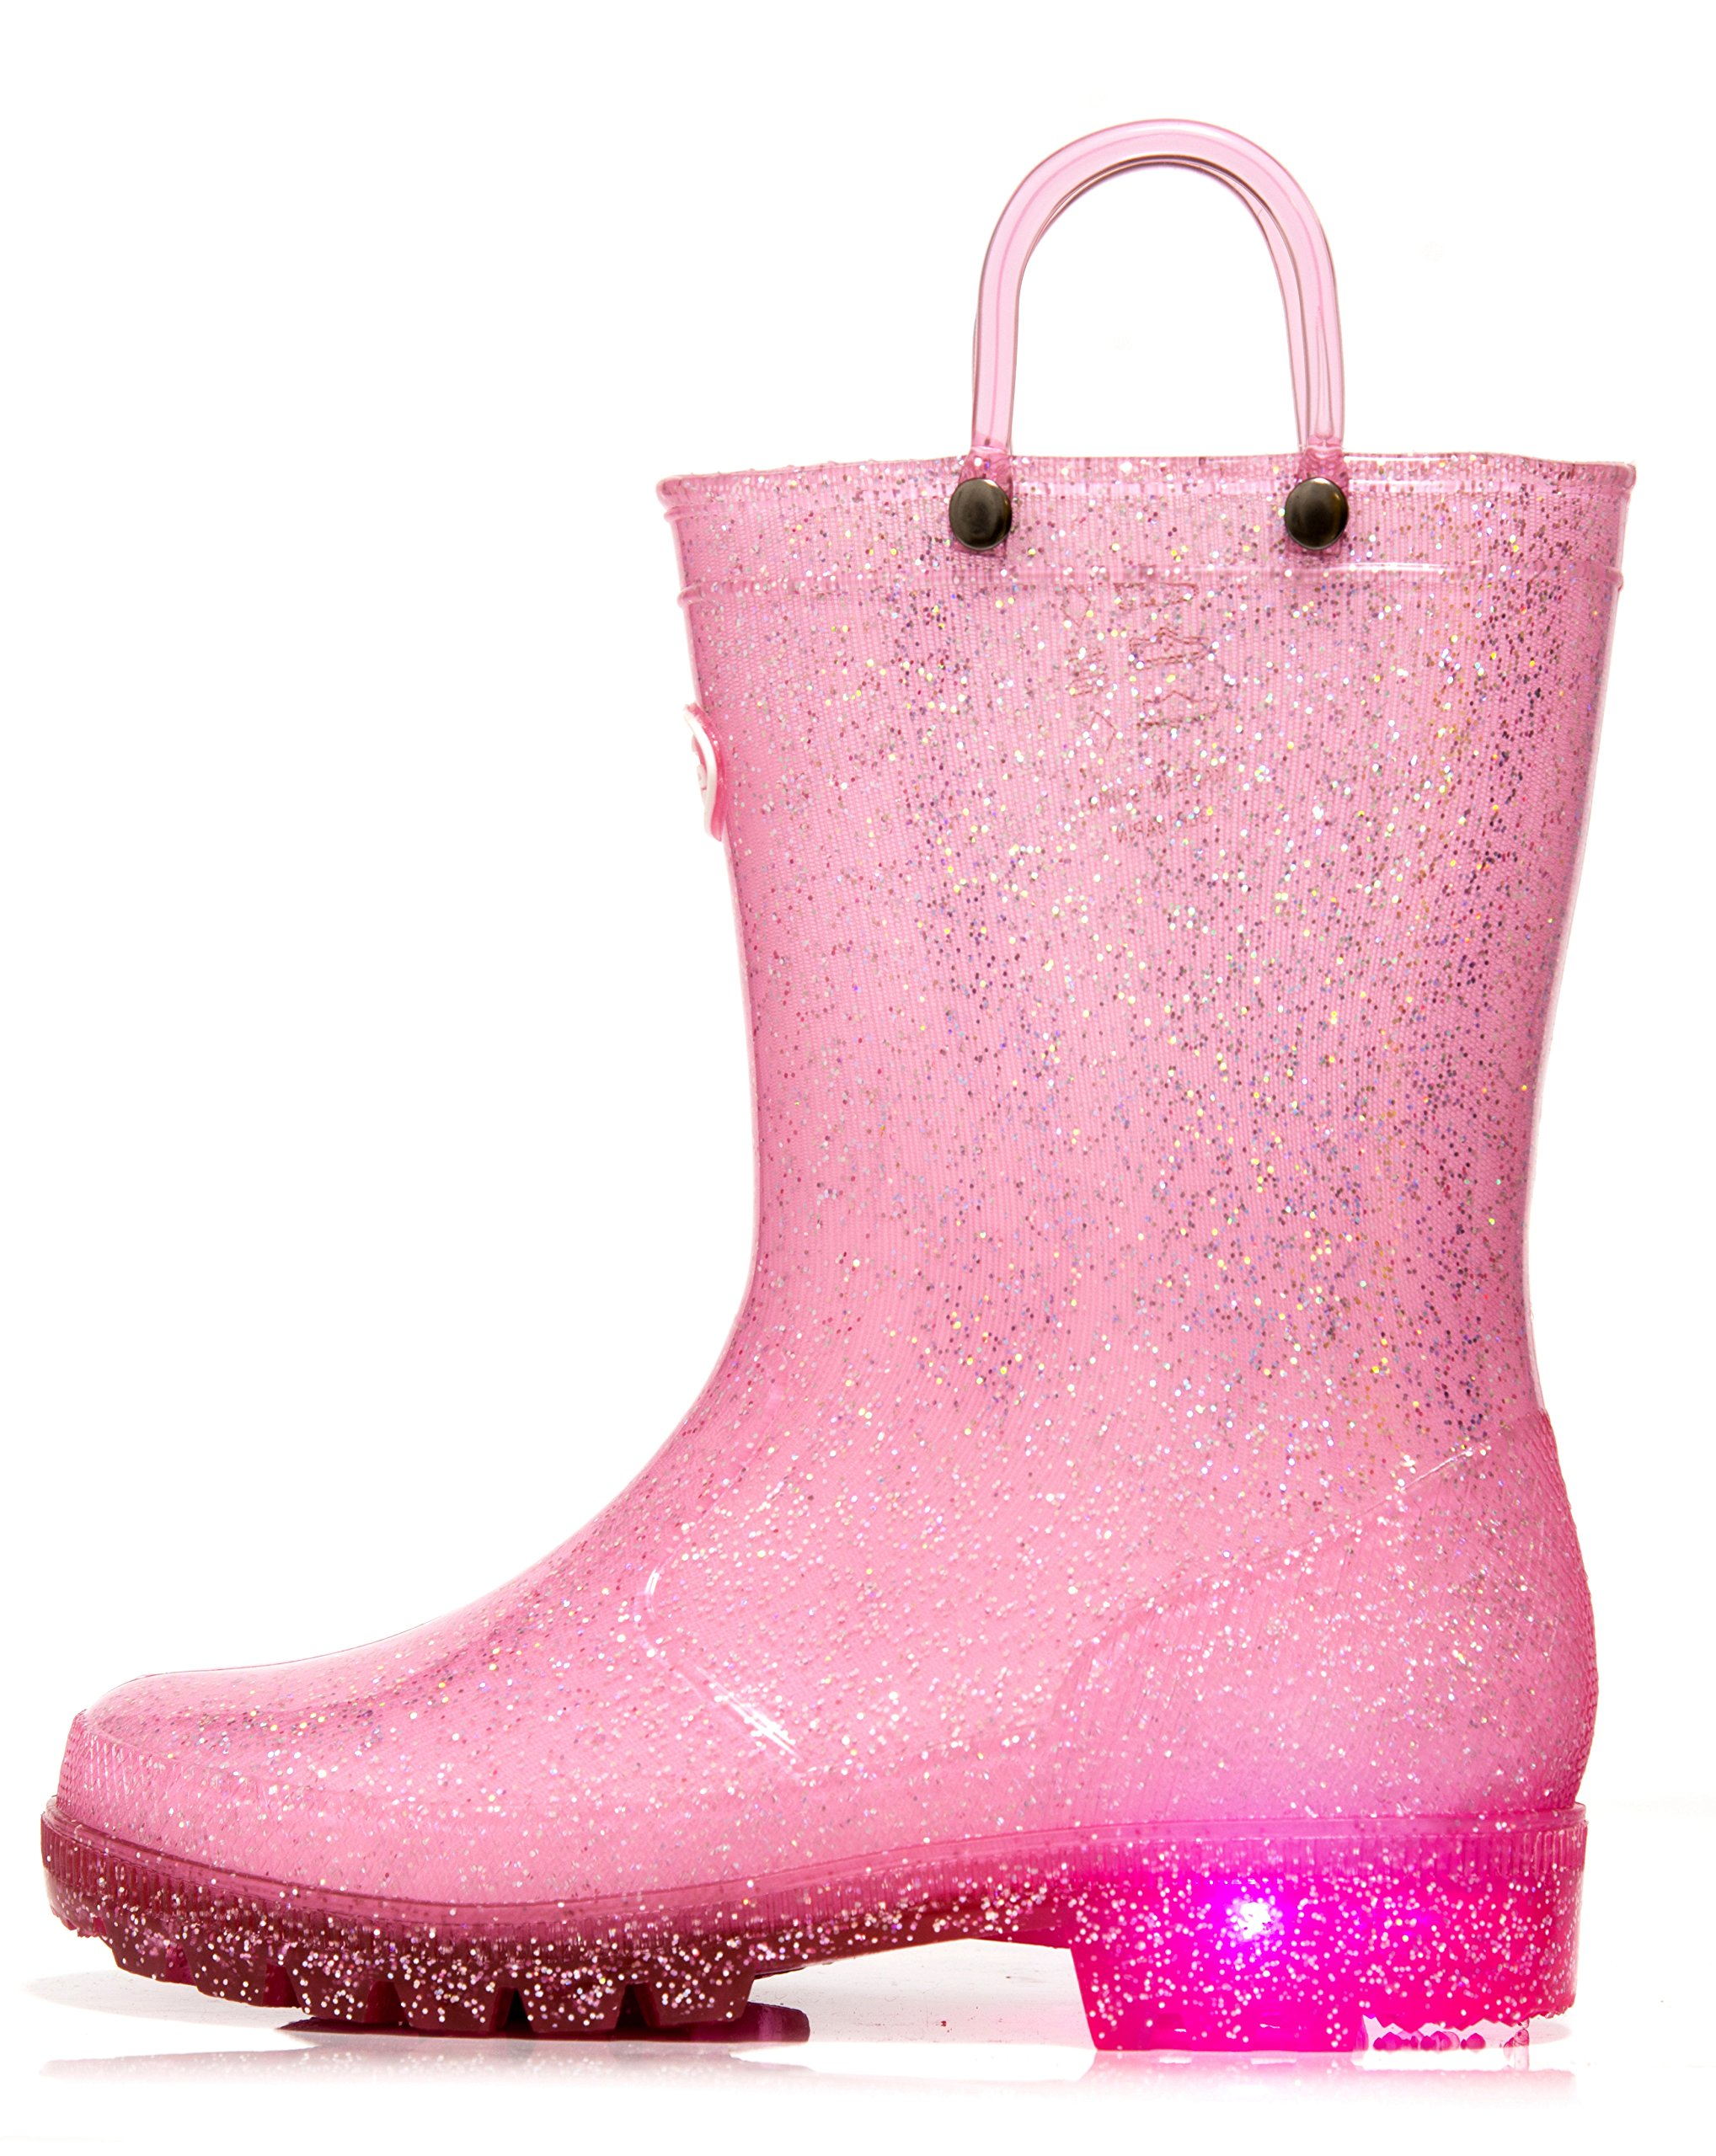 Outee Toddler Girls Kids Light up Rain Boots Waterproof Shoes Glitter Lightweight Cute Lovely Funny with Easy-On Handles Classic Comfortable Insoles Anti-Slippery Sole with Grip (Size 6,Pink)